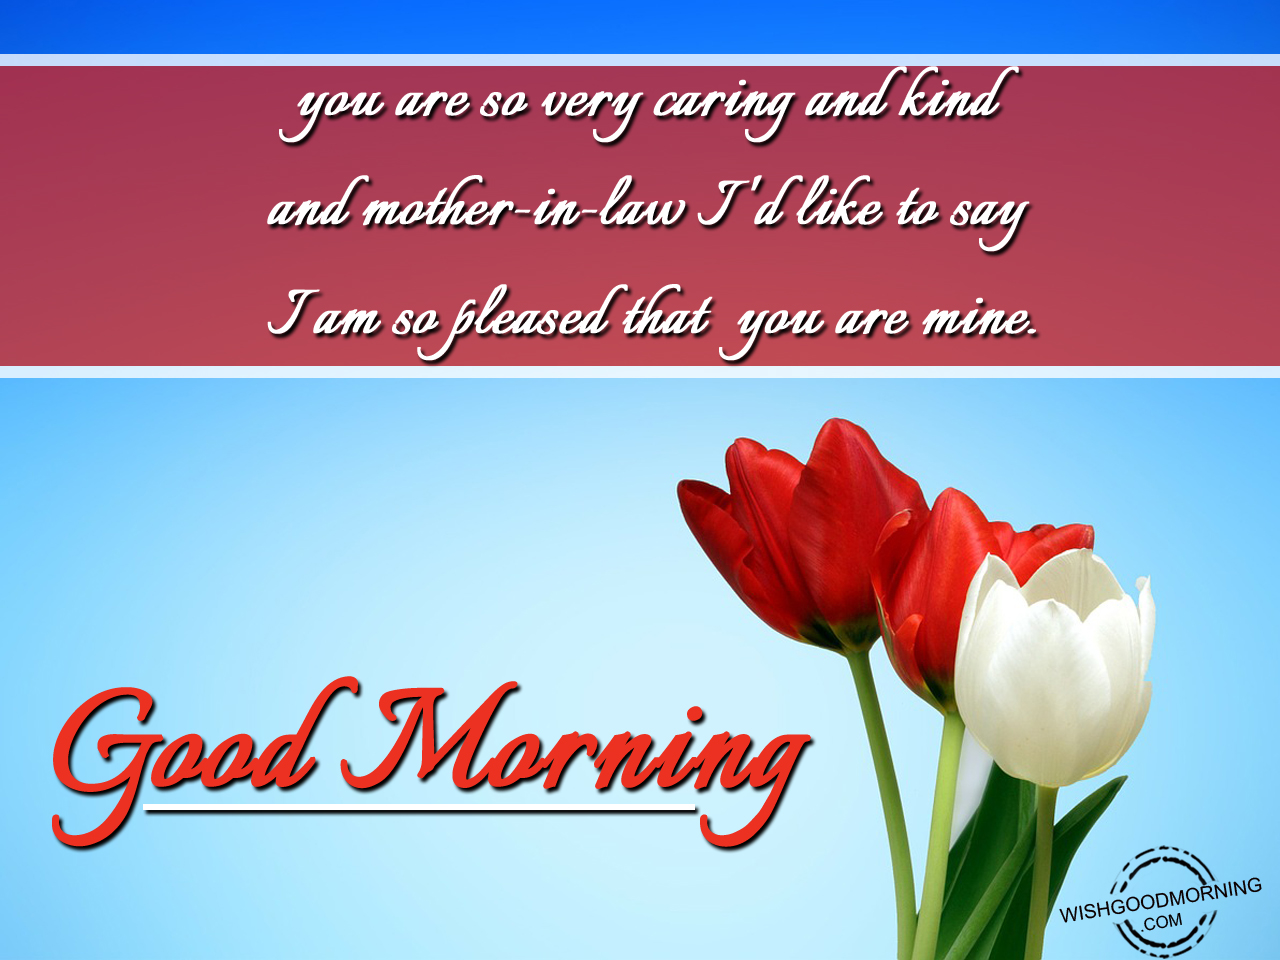 Good morning wishes for mother in law good morning pictures you are so very caring m4hsunfo